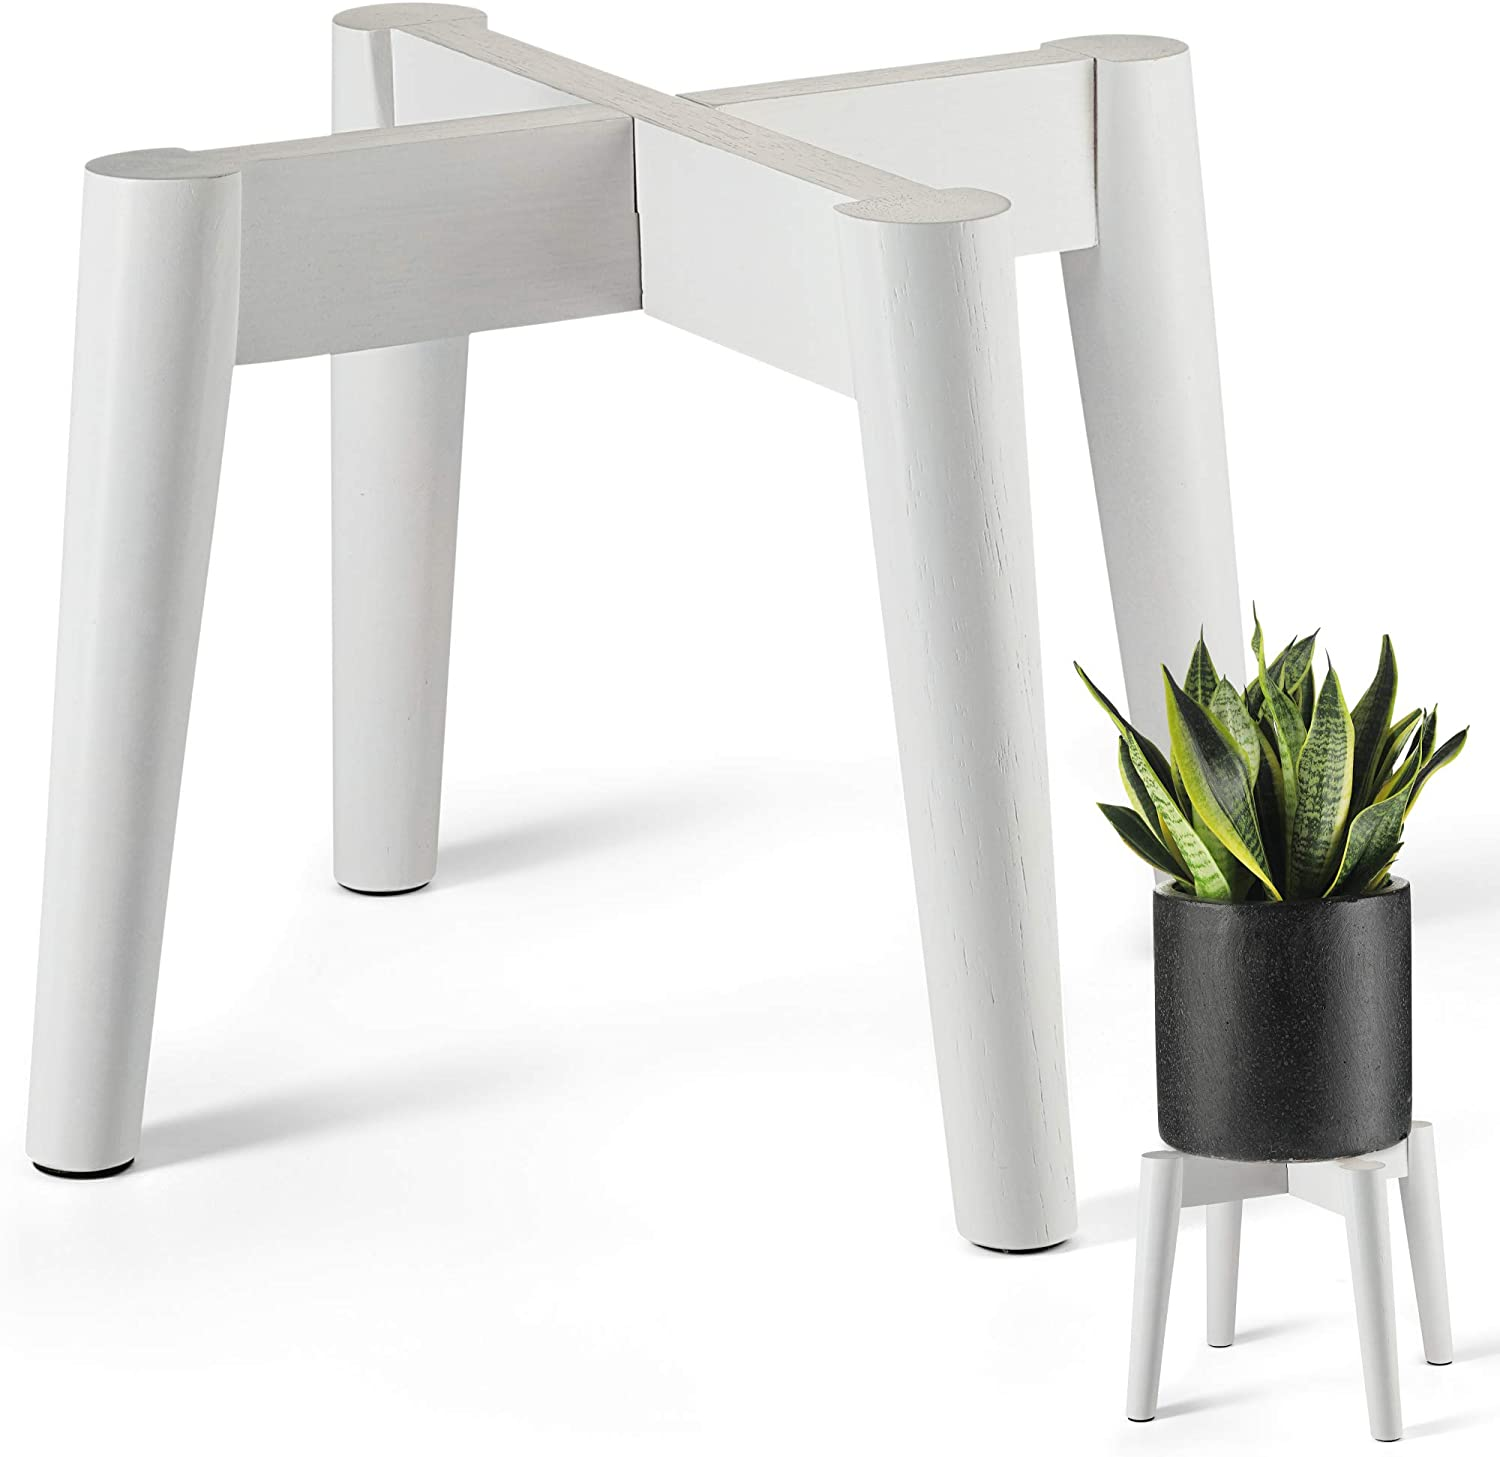 LITADA Plant Stands (Set of 2) Mid Century Modern Plant Stand Indoor (Plant Pot NOT Included) Flower Pot Holder Home Decor (White-2pcs)